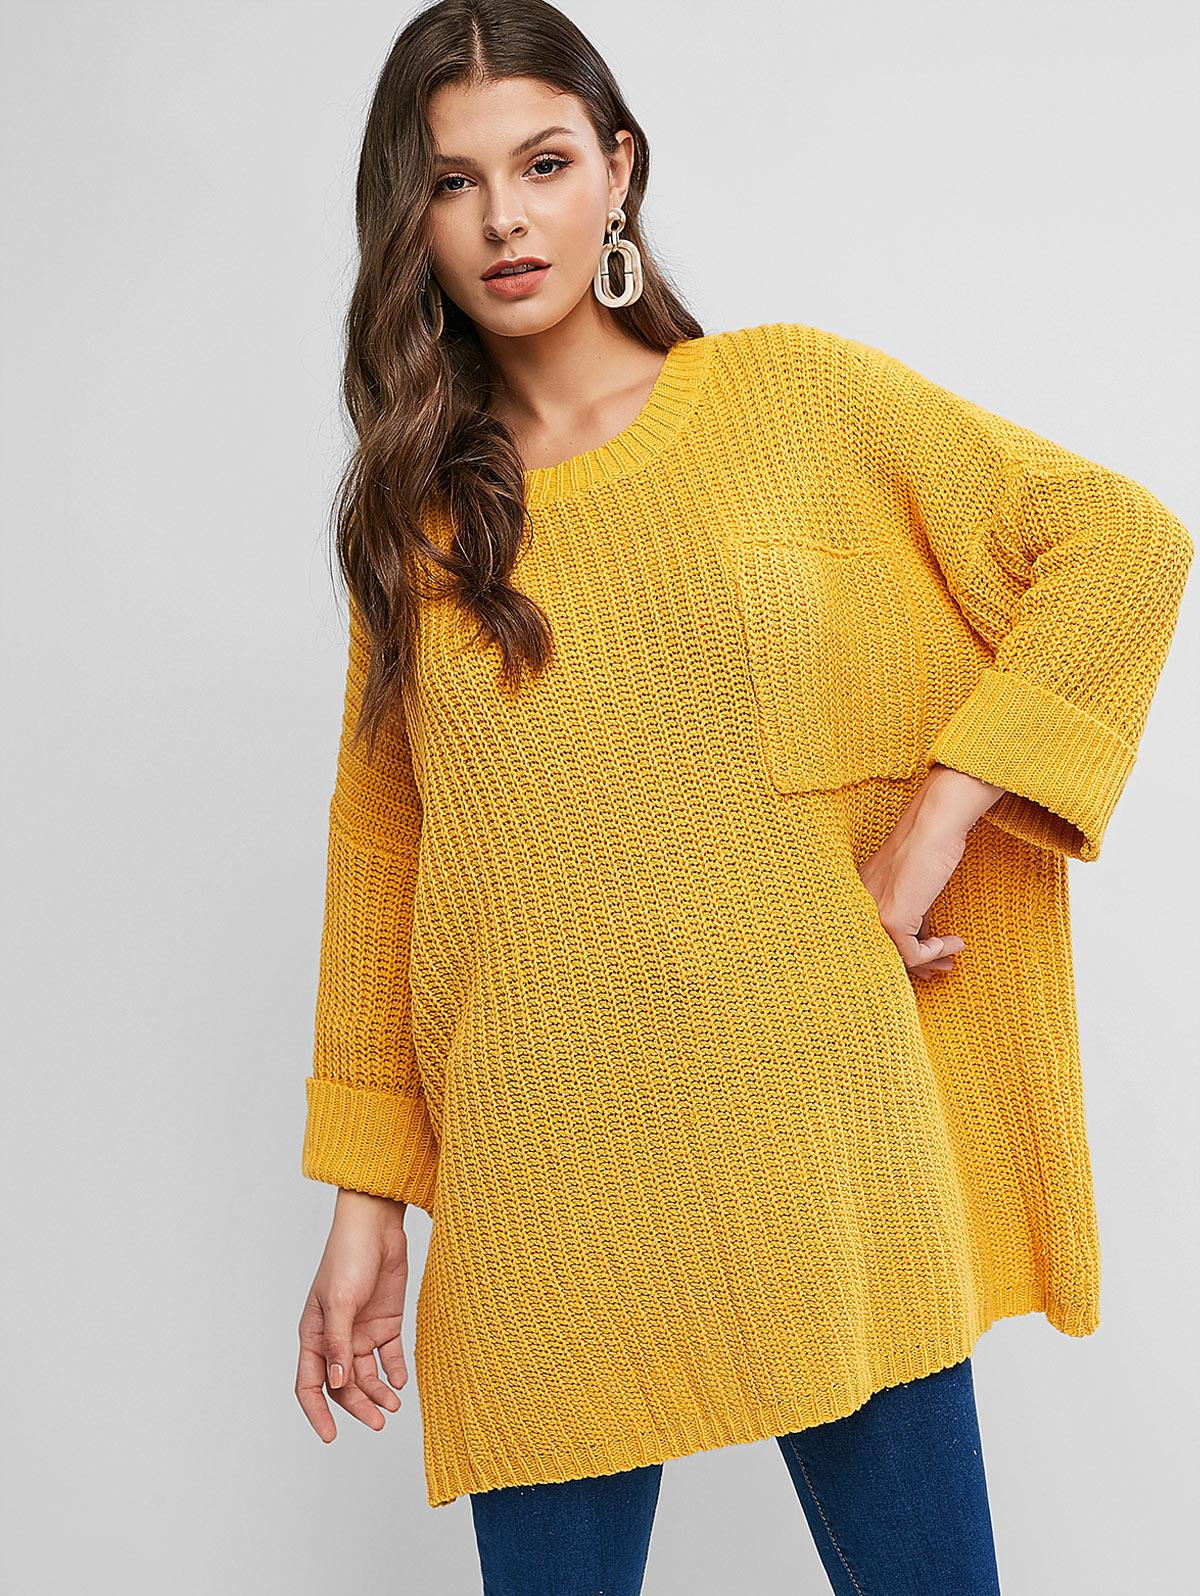 Cuffed Front Pocket Oversized Pullover Sweater